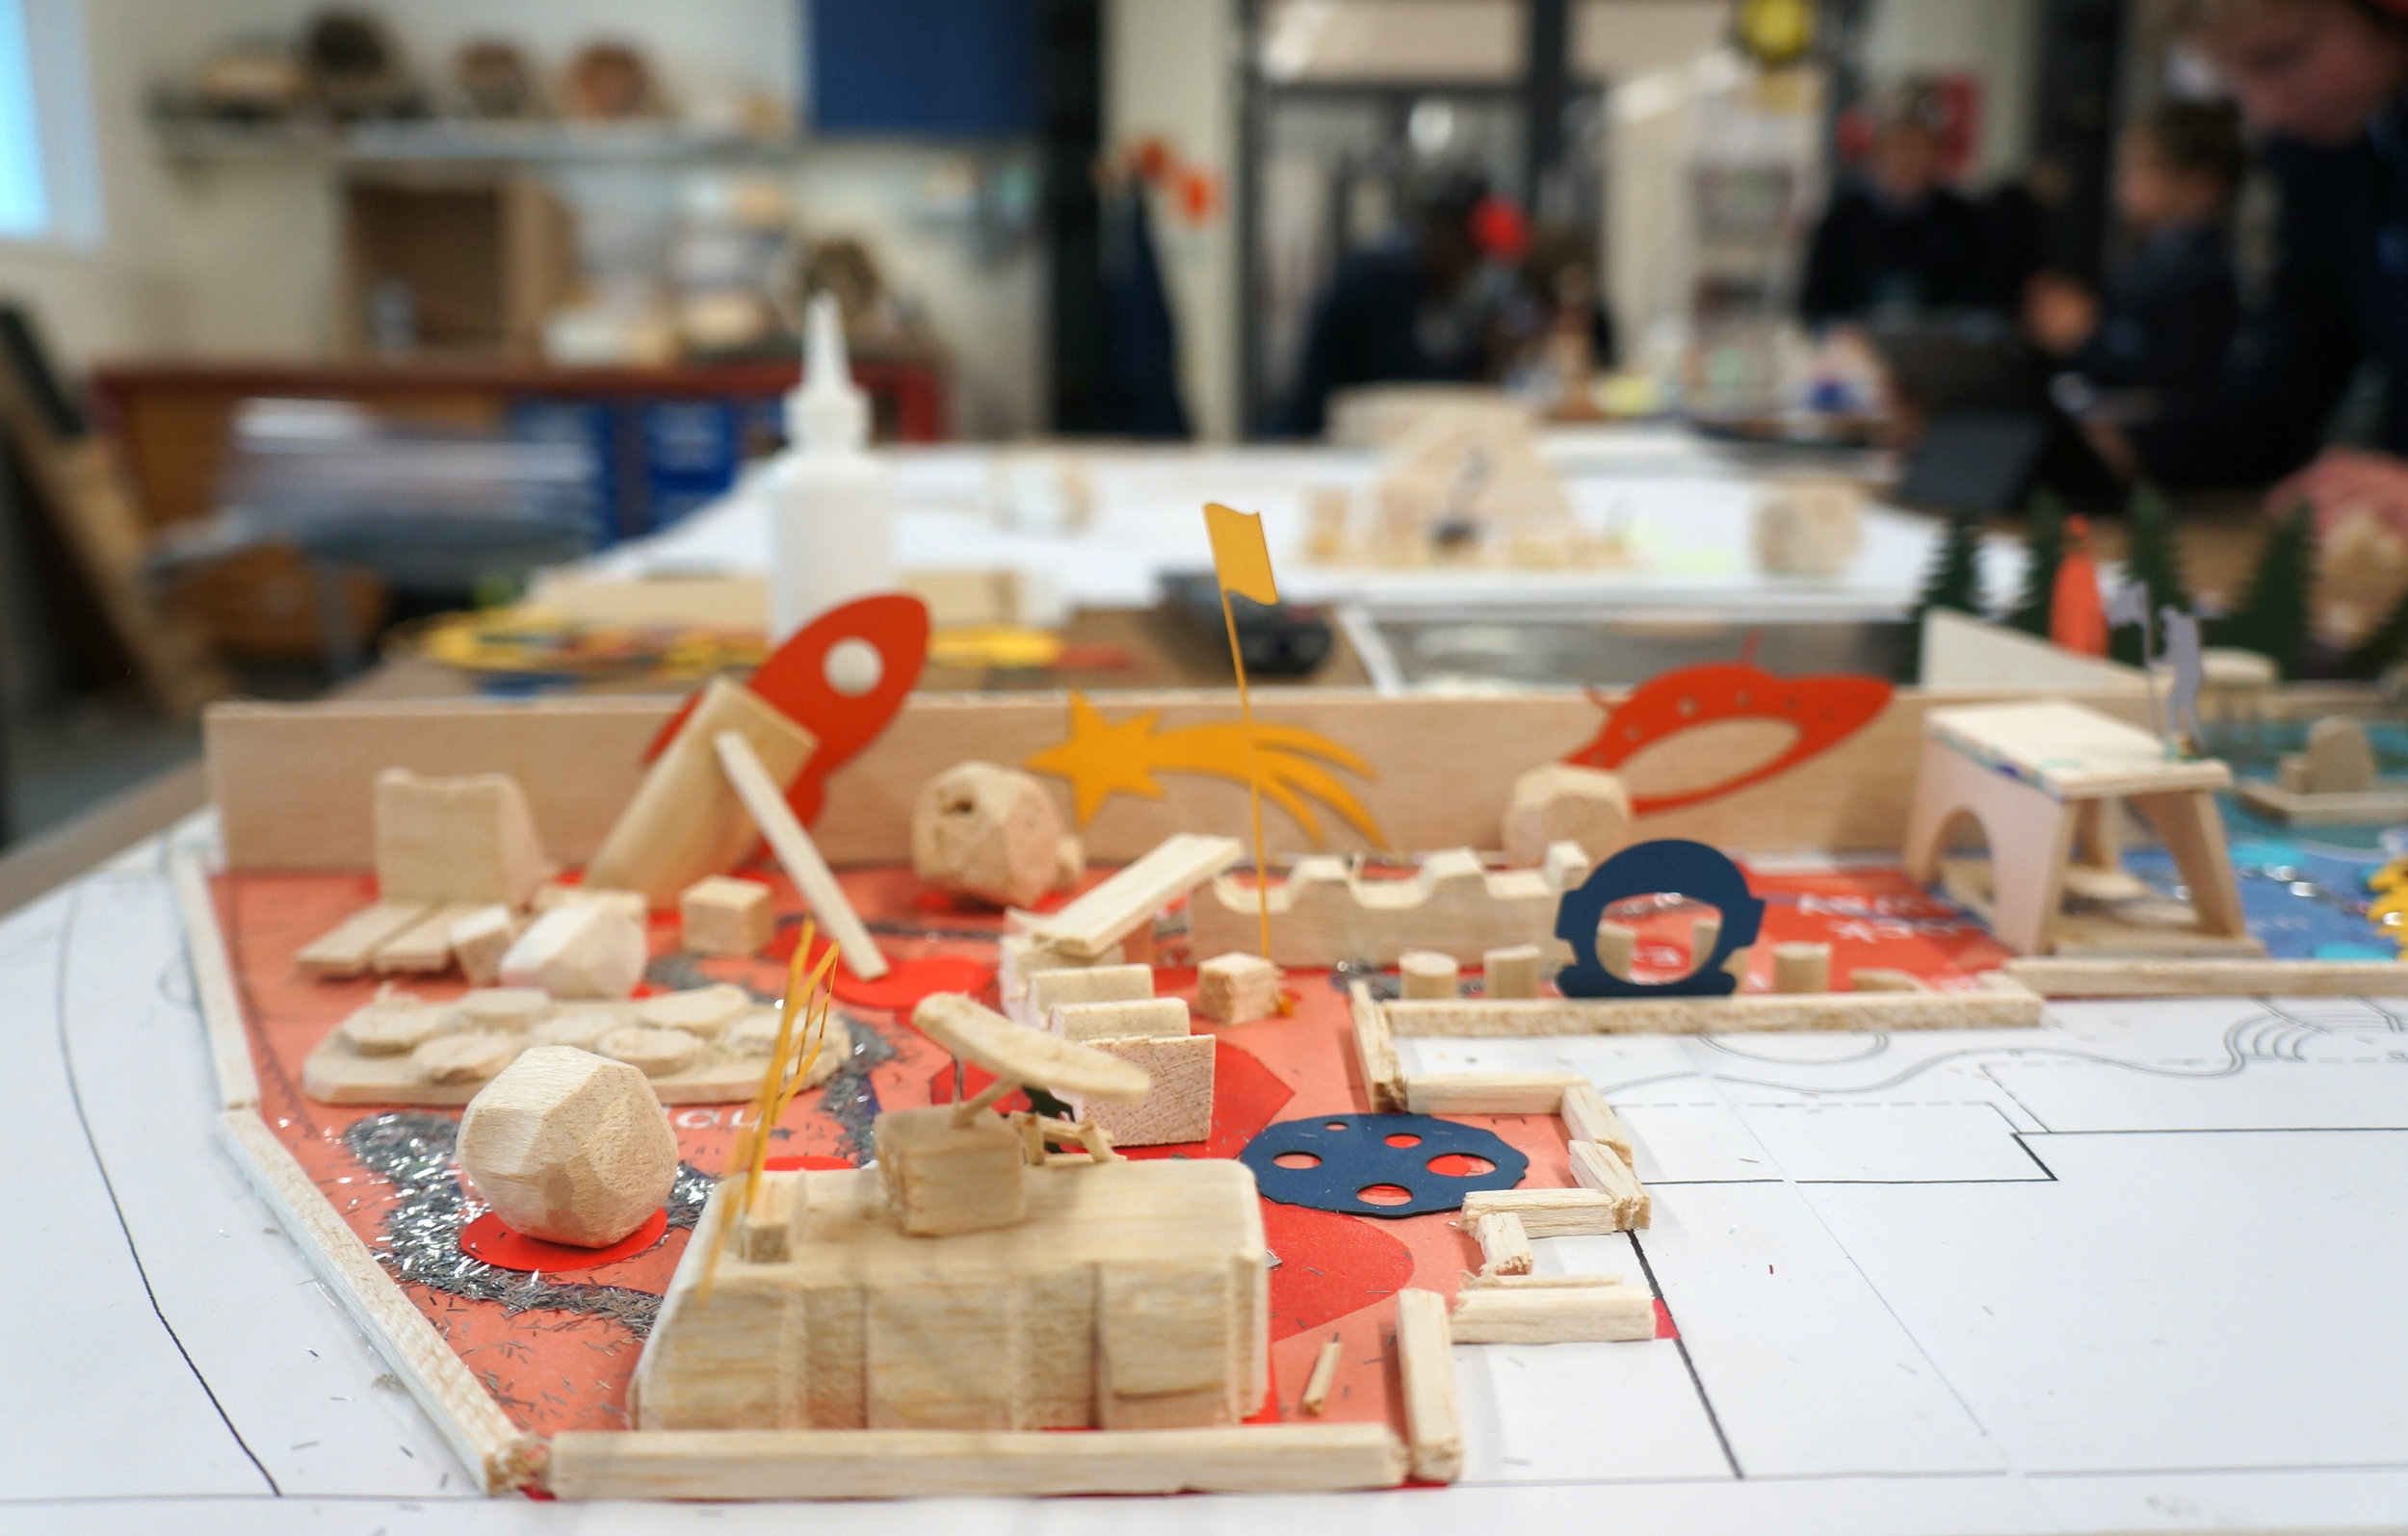 Space and the Future - Concept Model by pupils - Mars Rover.